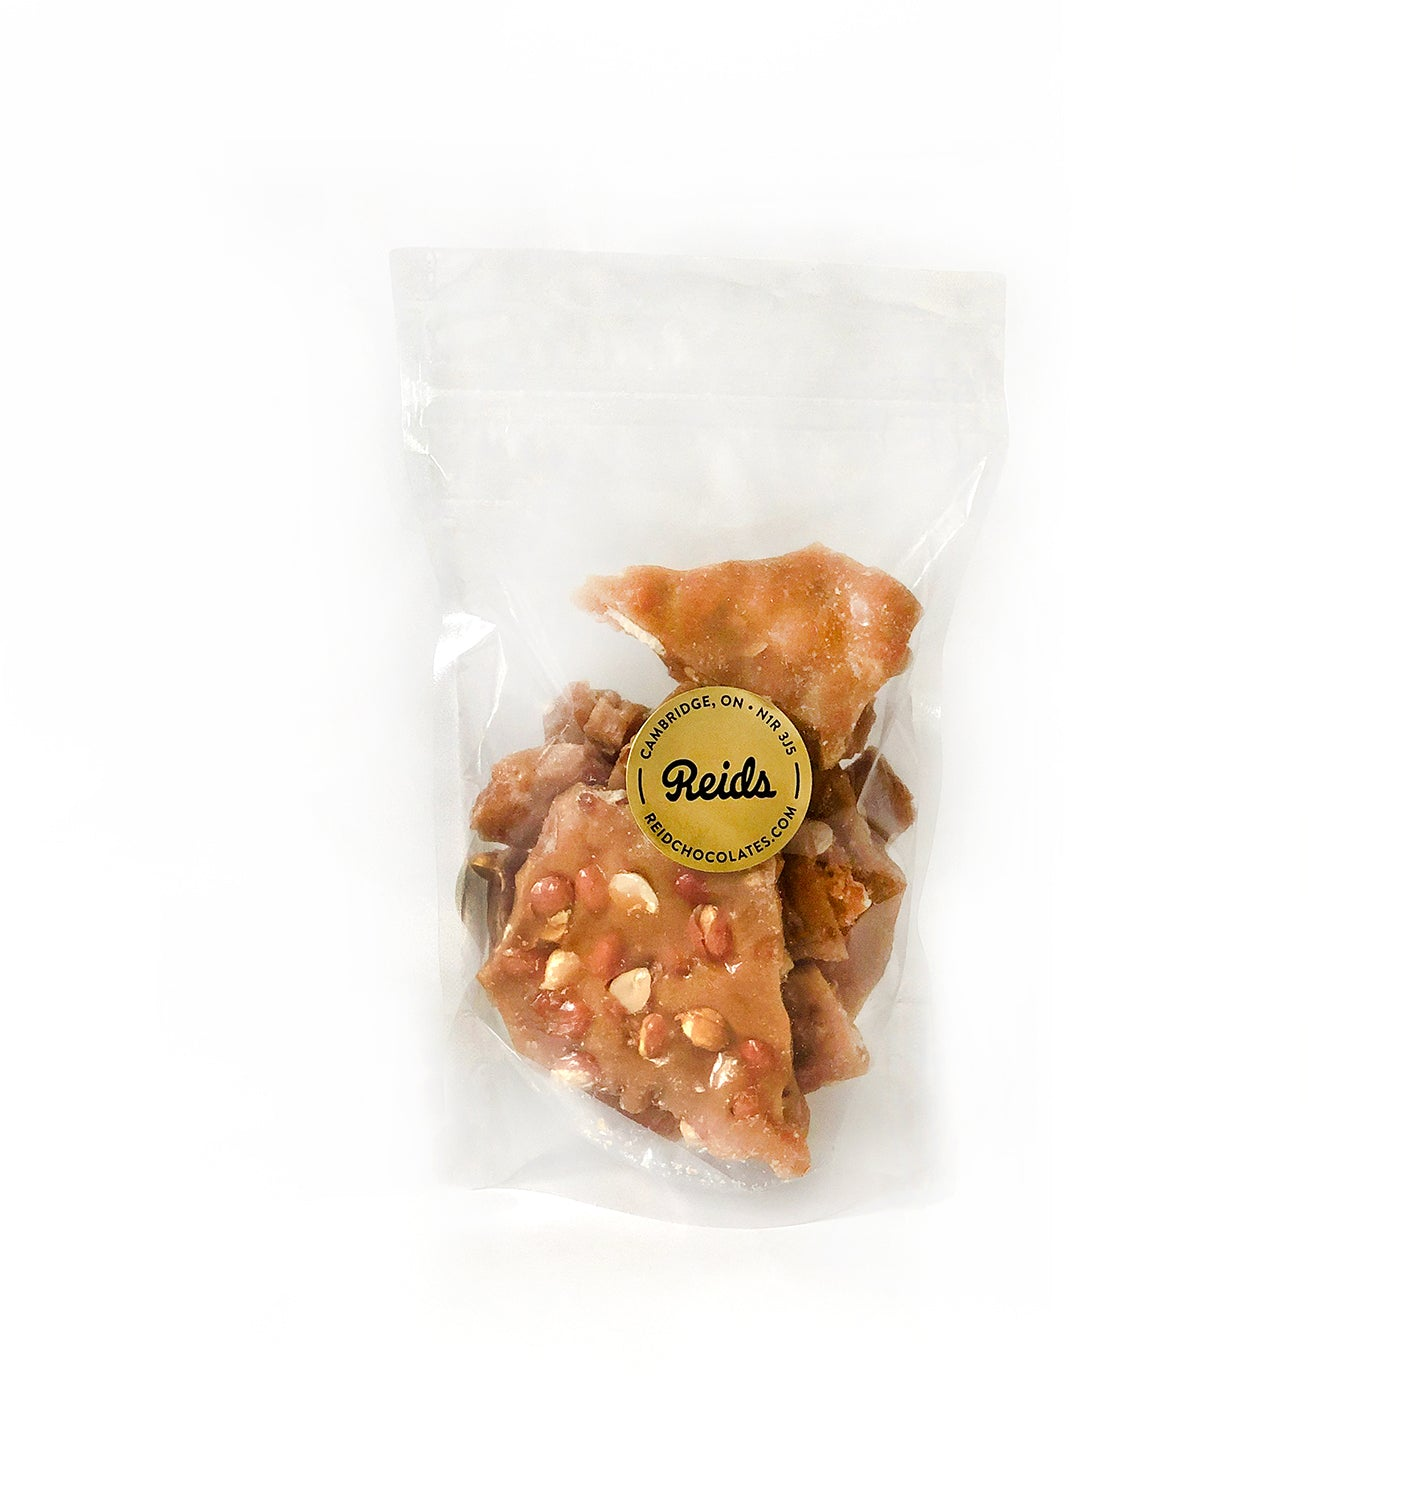 One of our newest products, Reids peanut brittle made with Four Fathers SHEVCHENKO 9 craft beer.